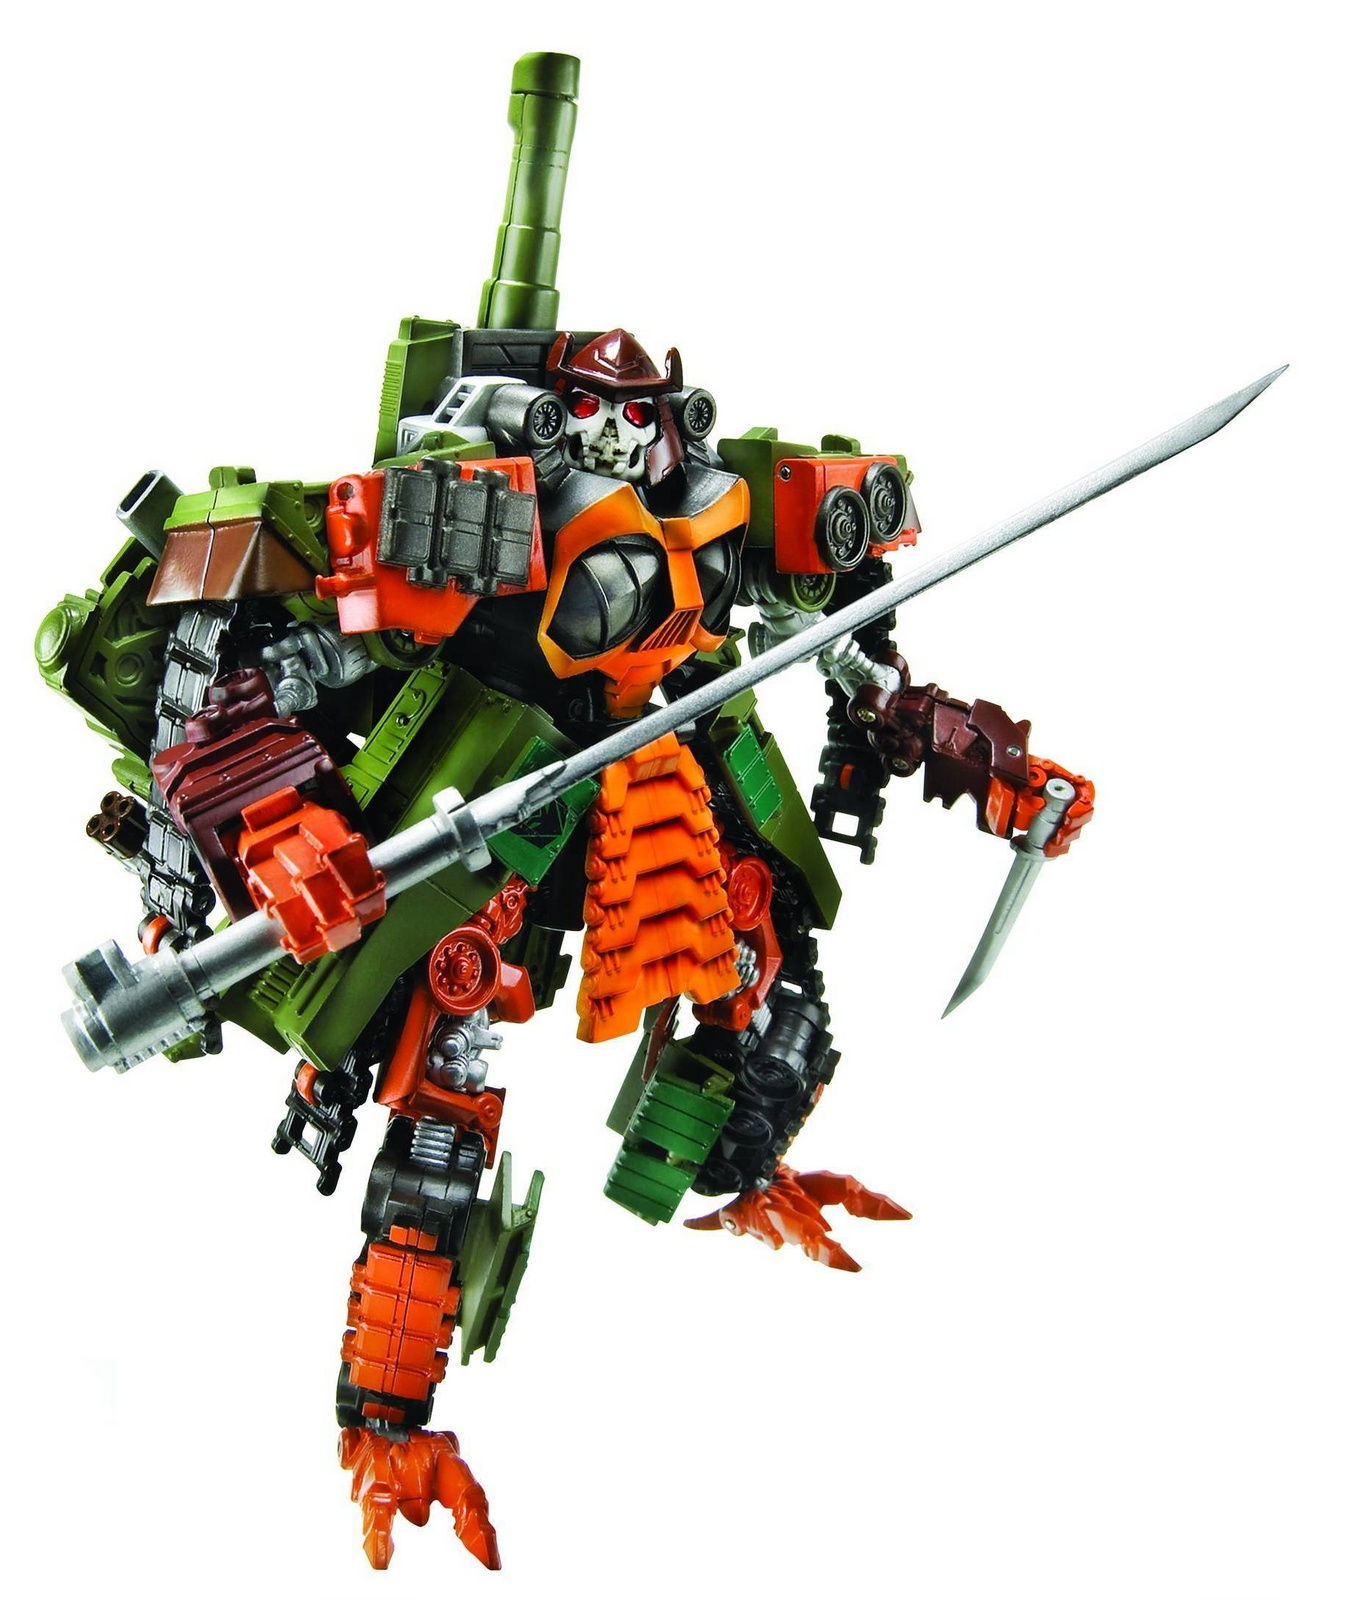 Base information for character toy decepticon bludgeon